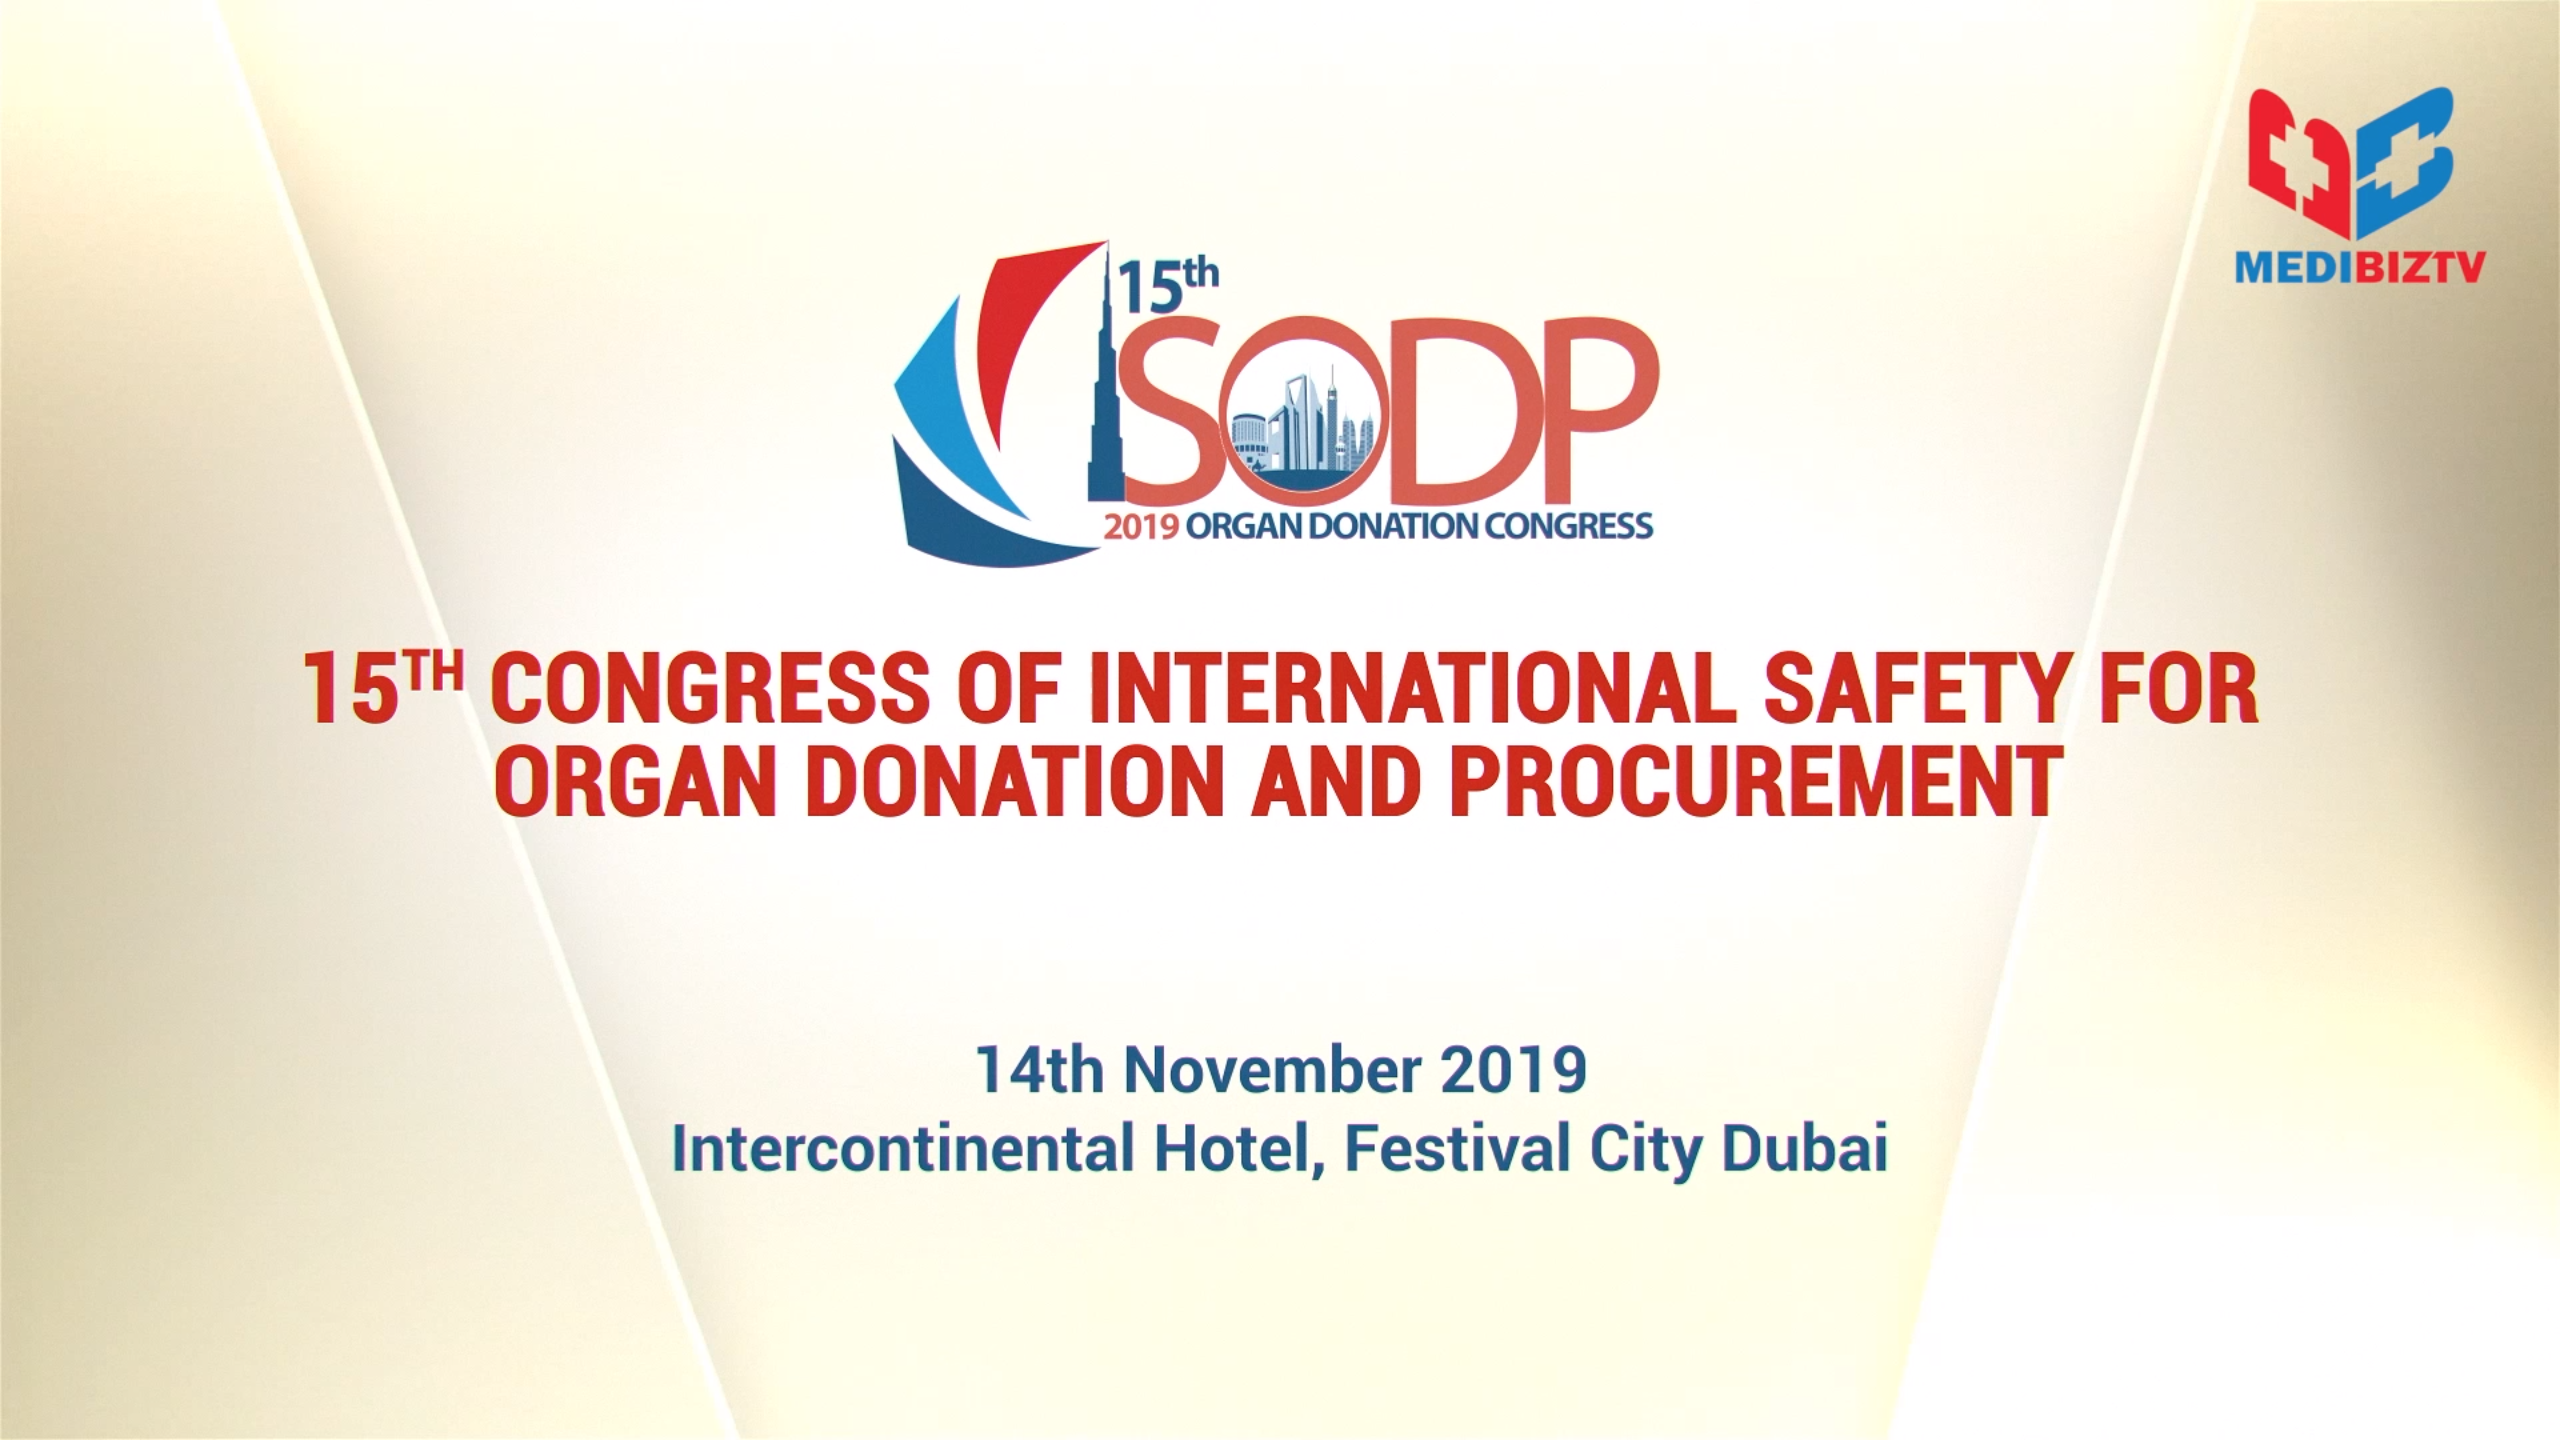 15th Congress of International Safety for Organ Donation and Procurement